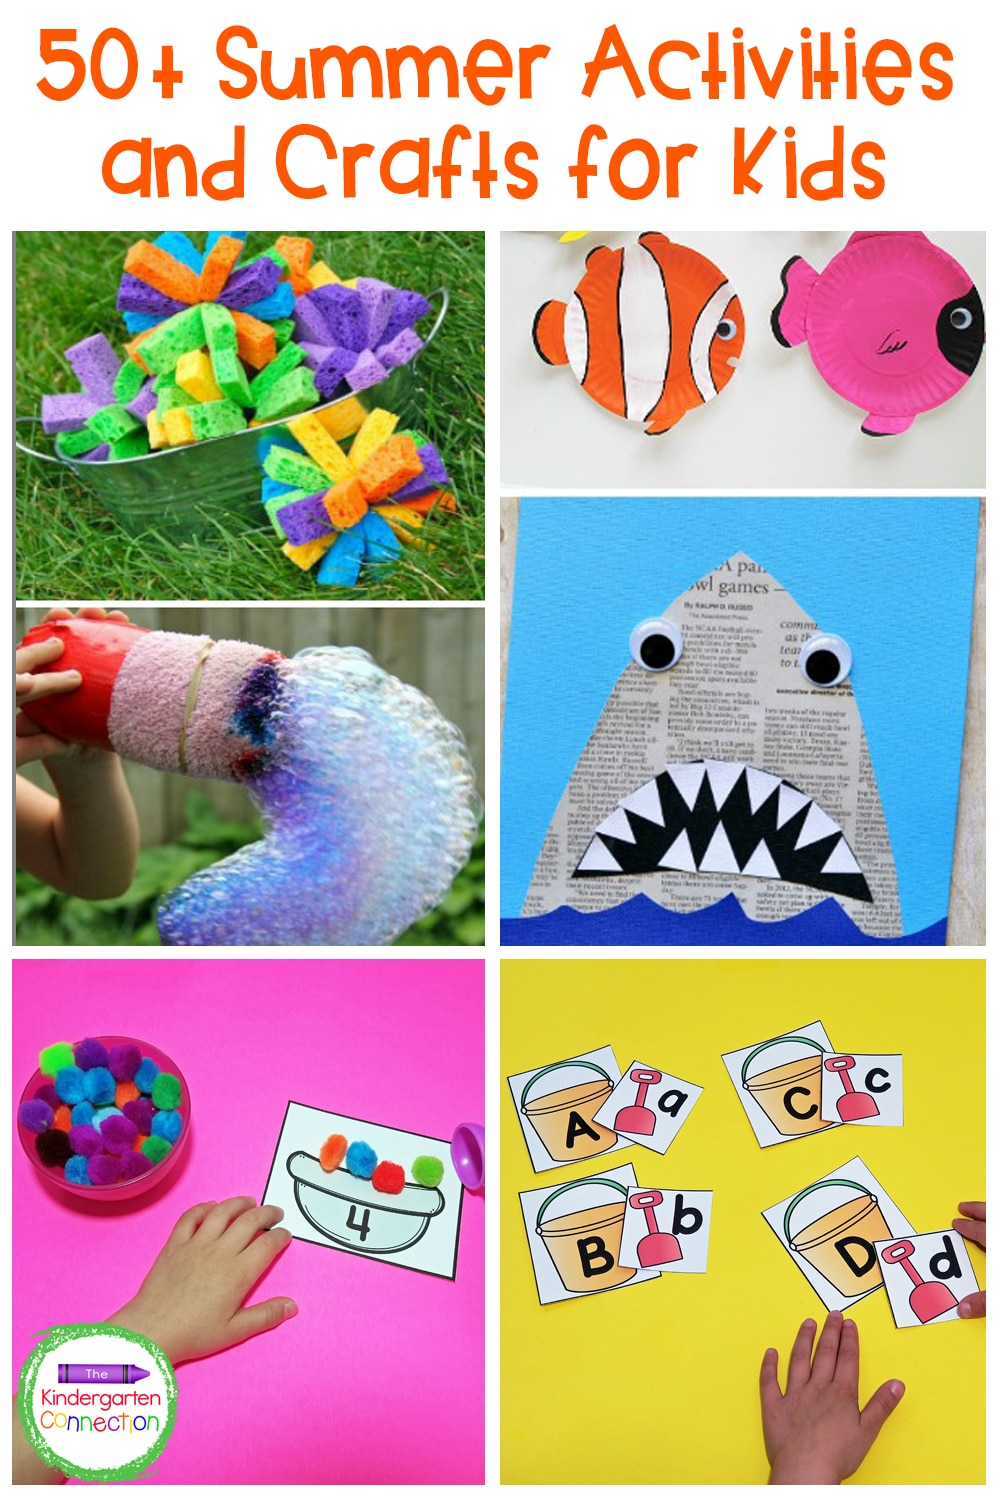 Ready for summertime? We've got 50+ awesome summer activities and crafts for kids to bring the summer fun into the classroom or your home!